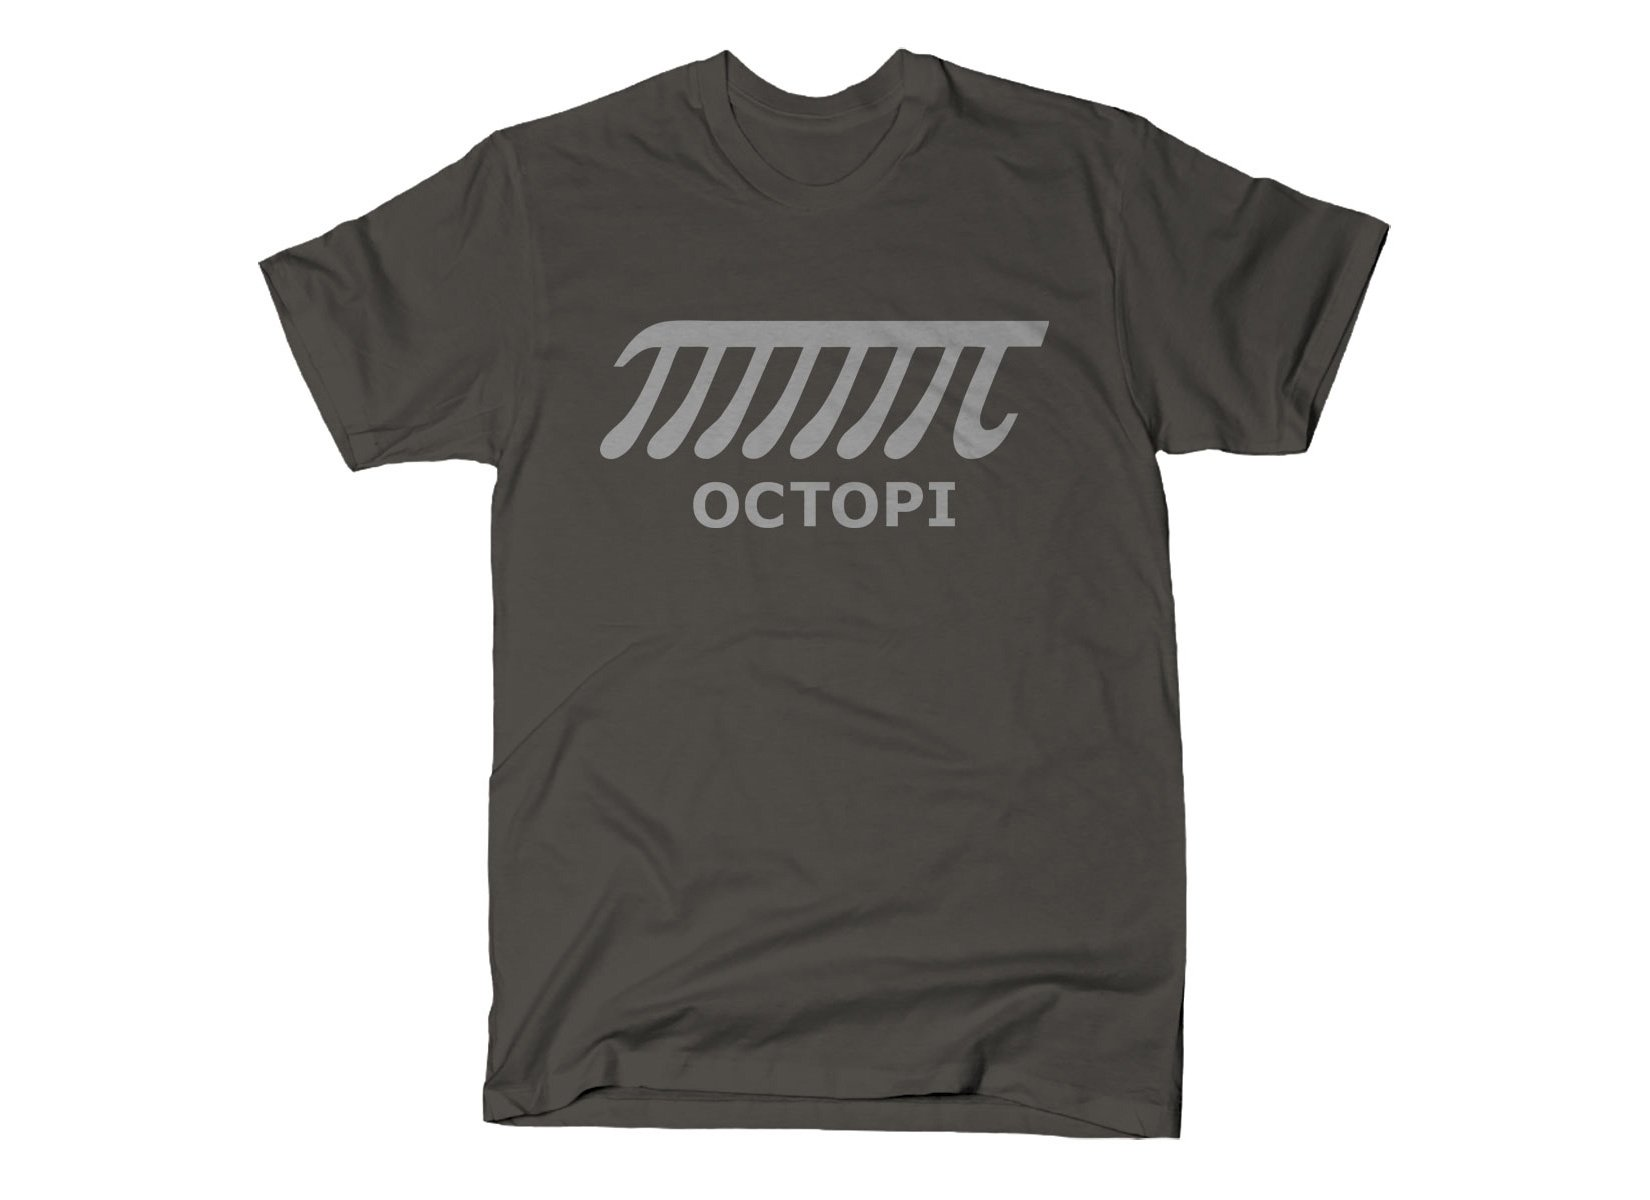 Octopi on Mens T-Shirt